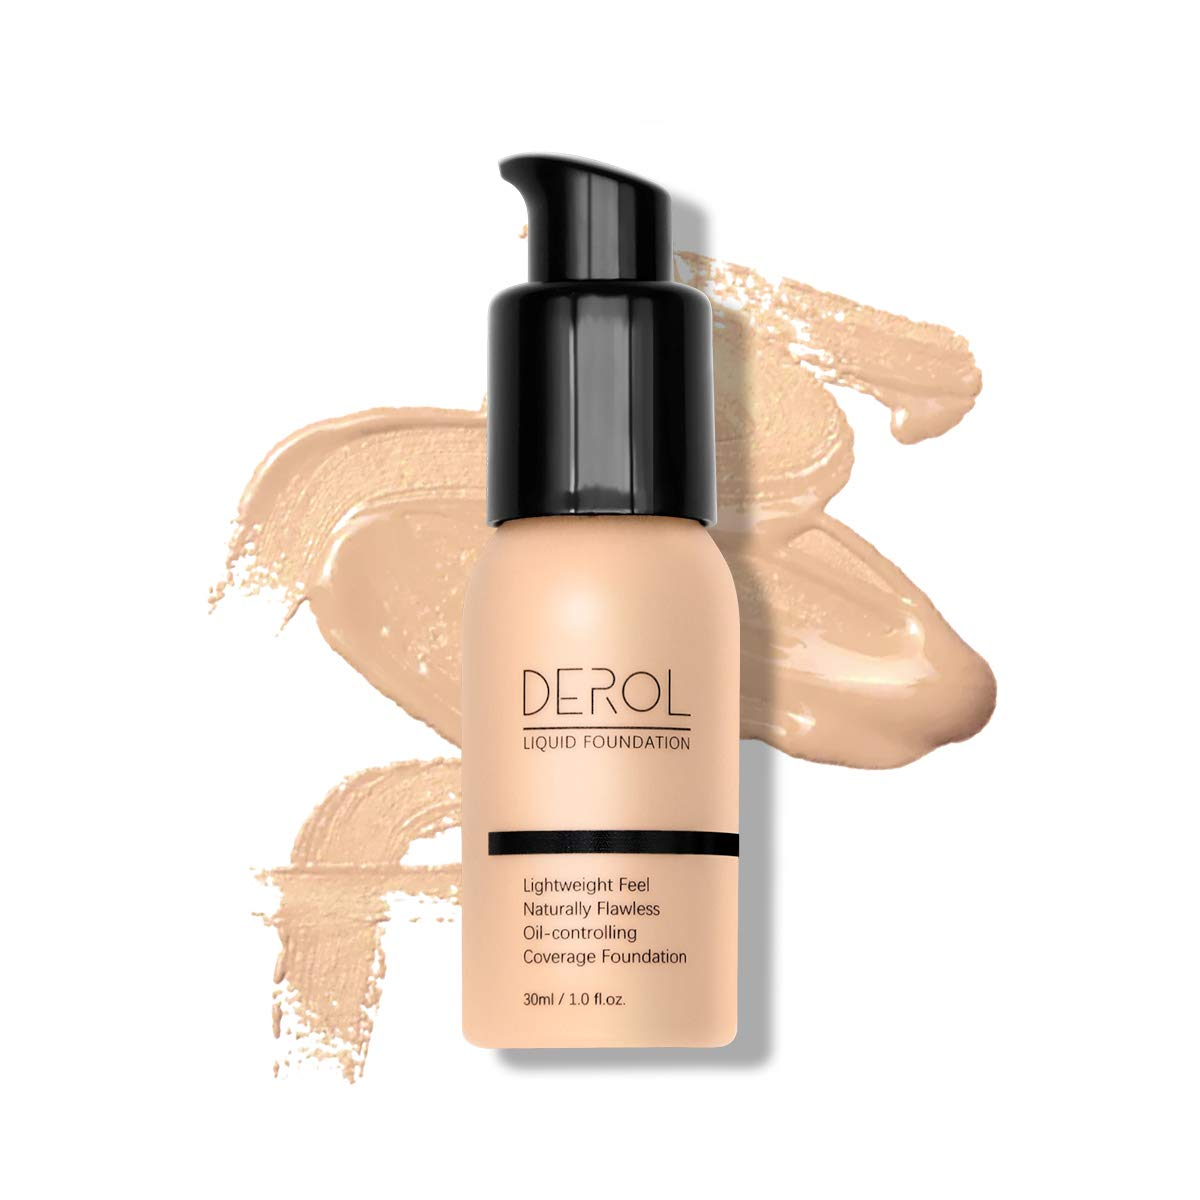 DAGEDA Soft Full Coverage Concealer Liquid Foundation Brightening Moisturizing Oil Control Waterproof Liquid Foundation Cream for Any Skin Color, Age And Sex 30ml(#01 WHIPPED CREAM)